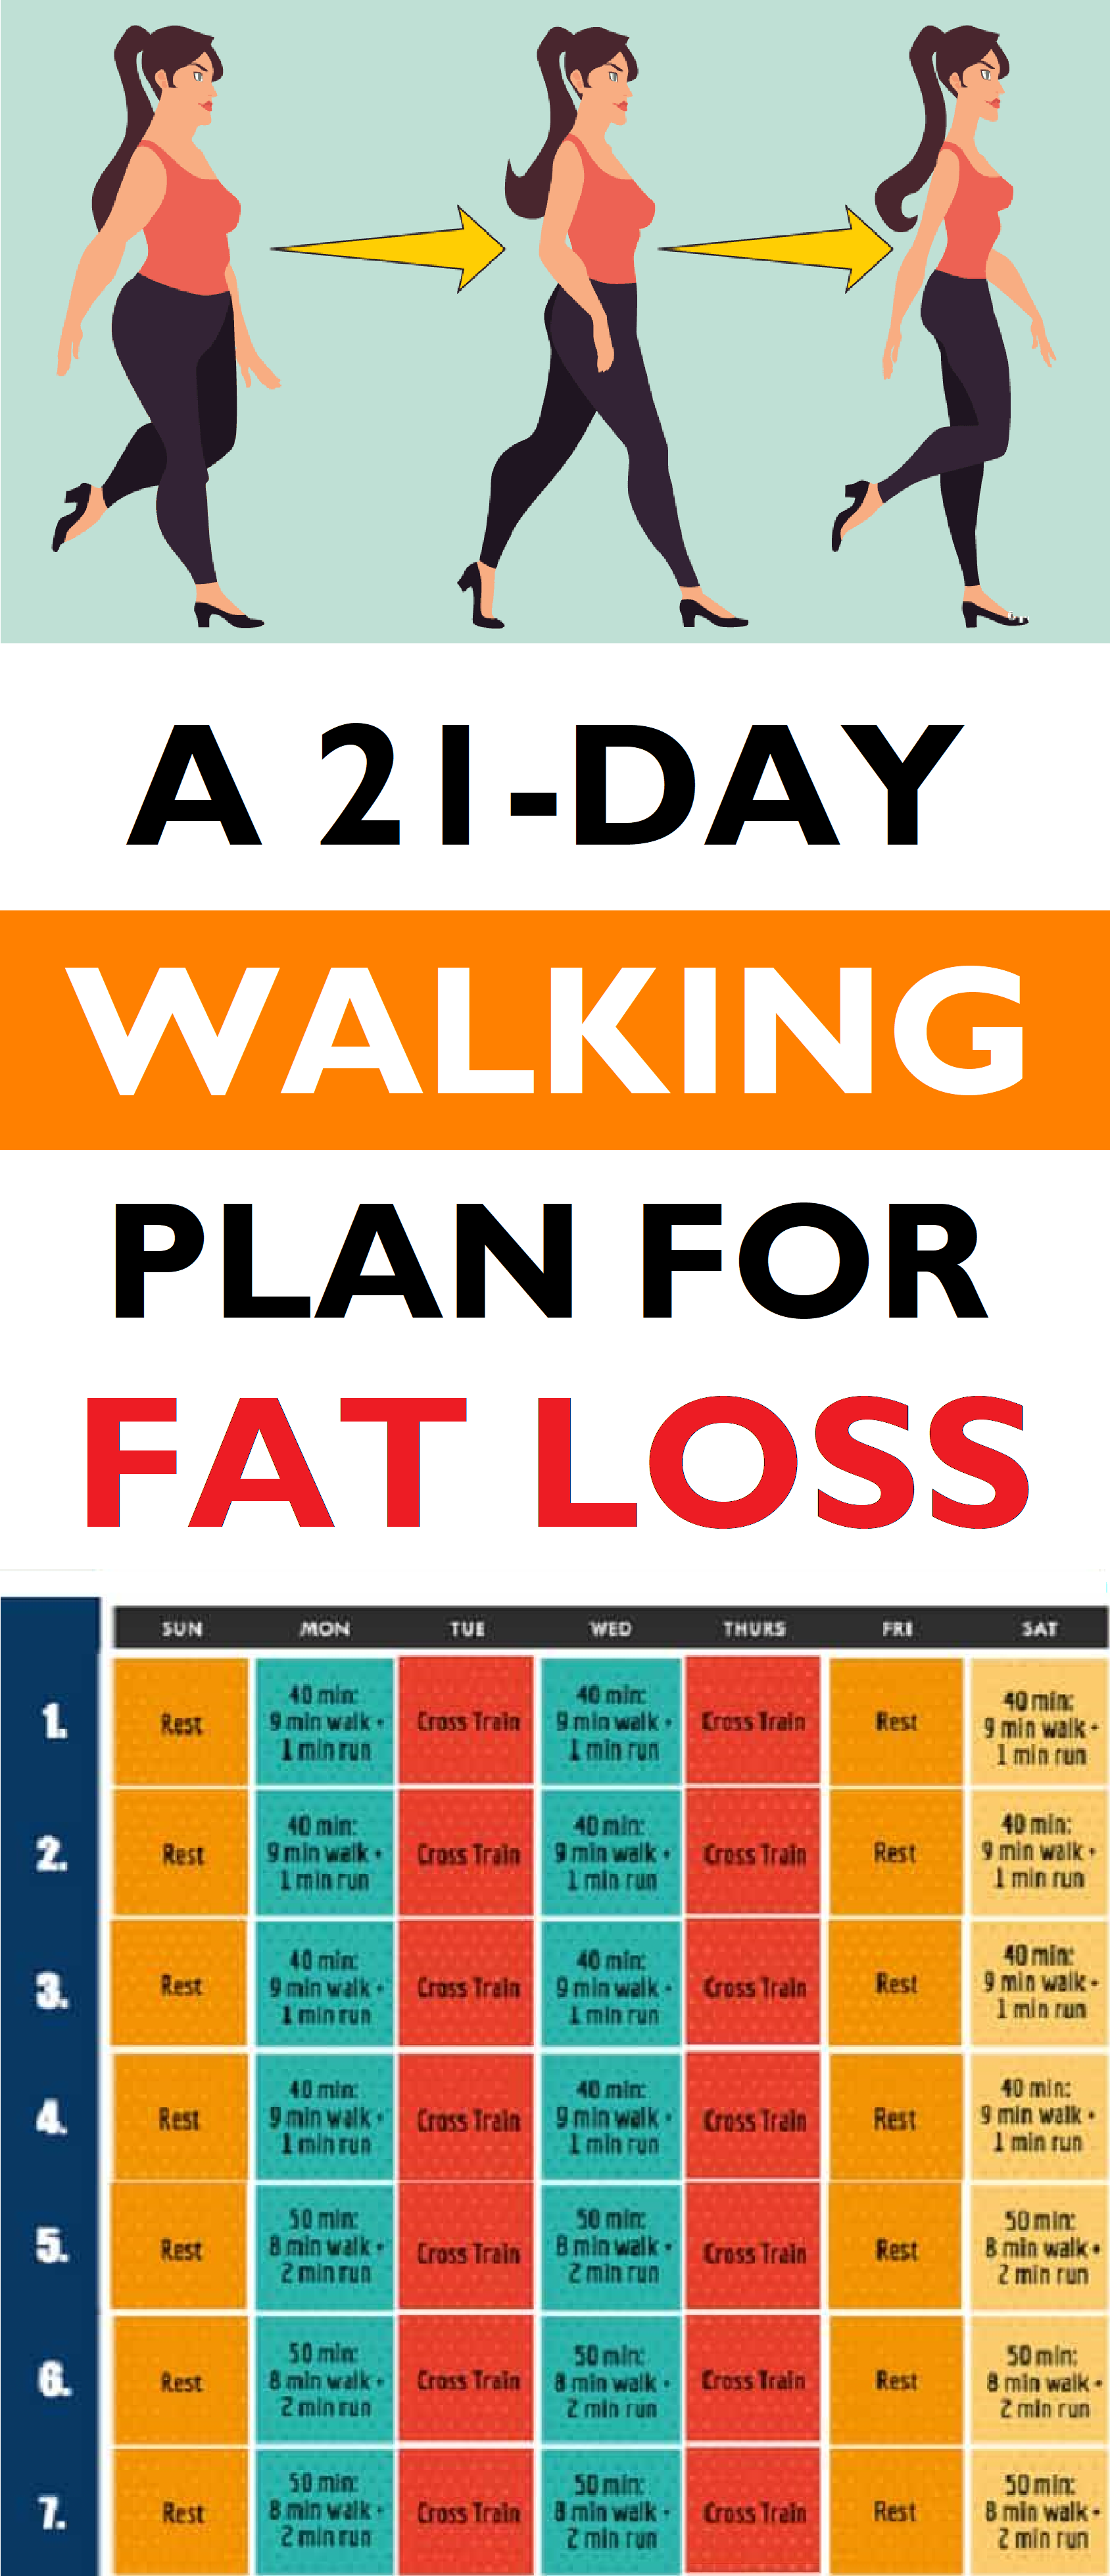 a 21-day walking plan for fat loss | how to exercise with no gym fee